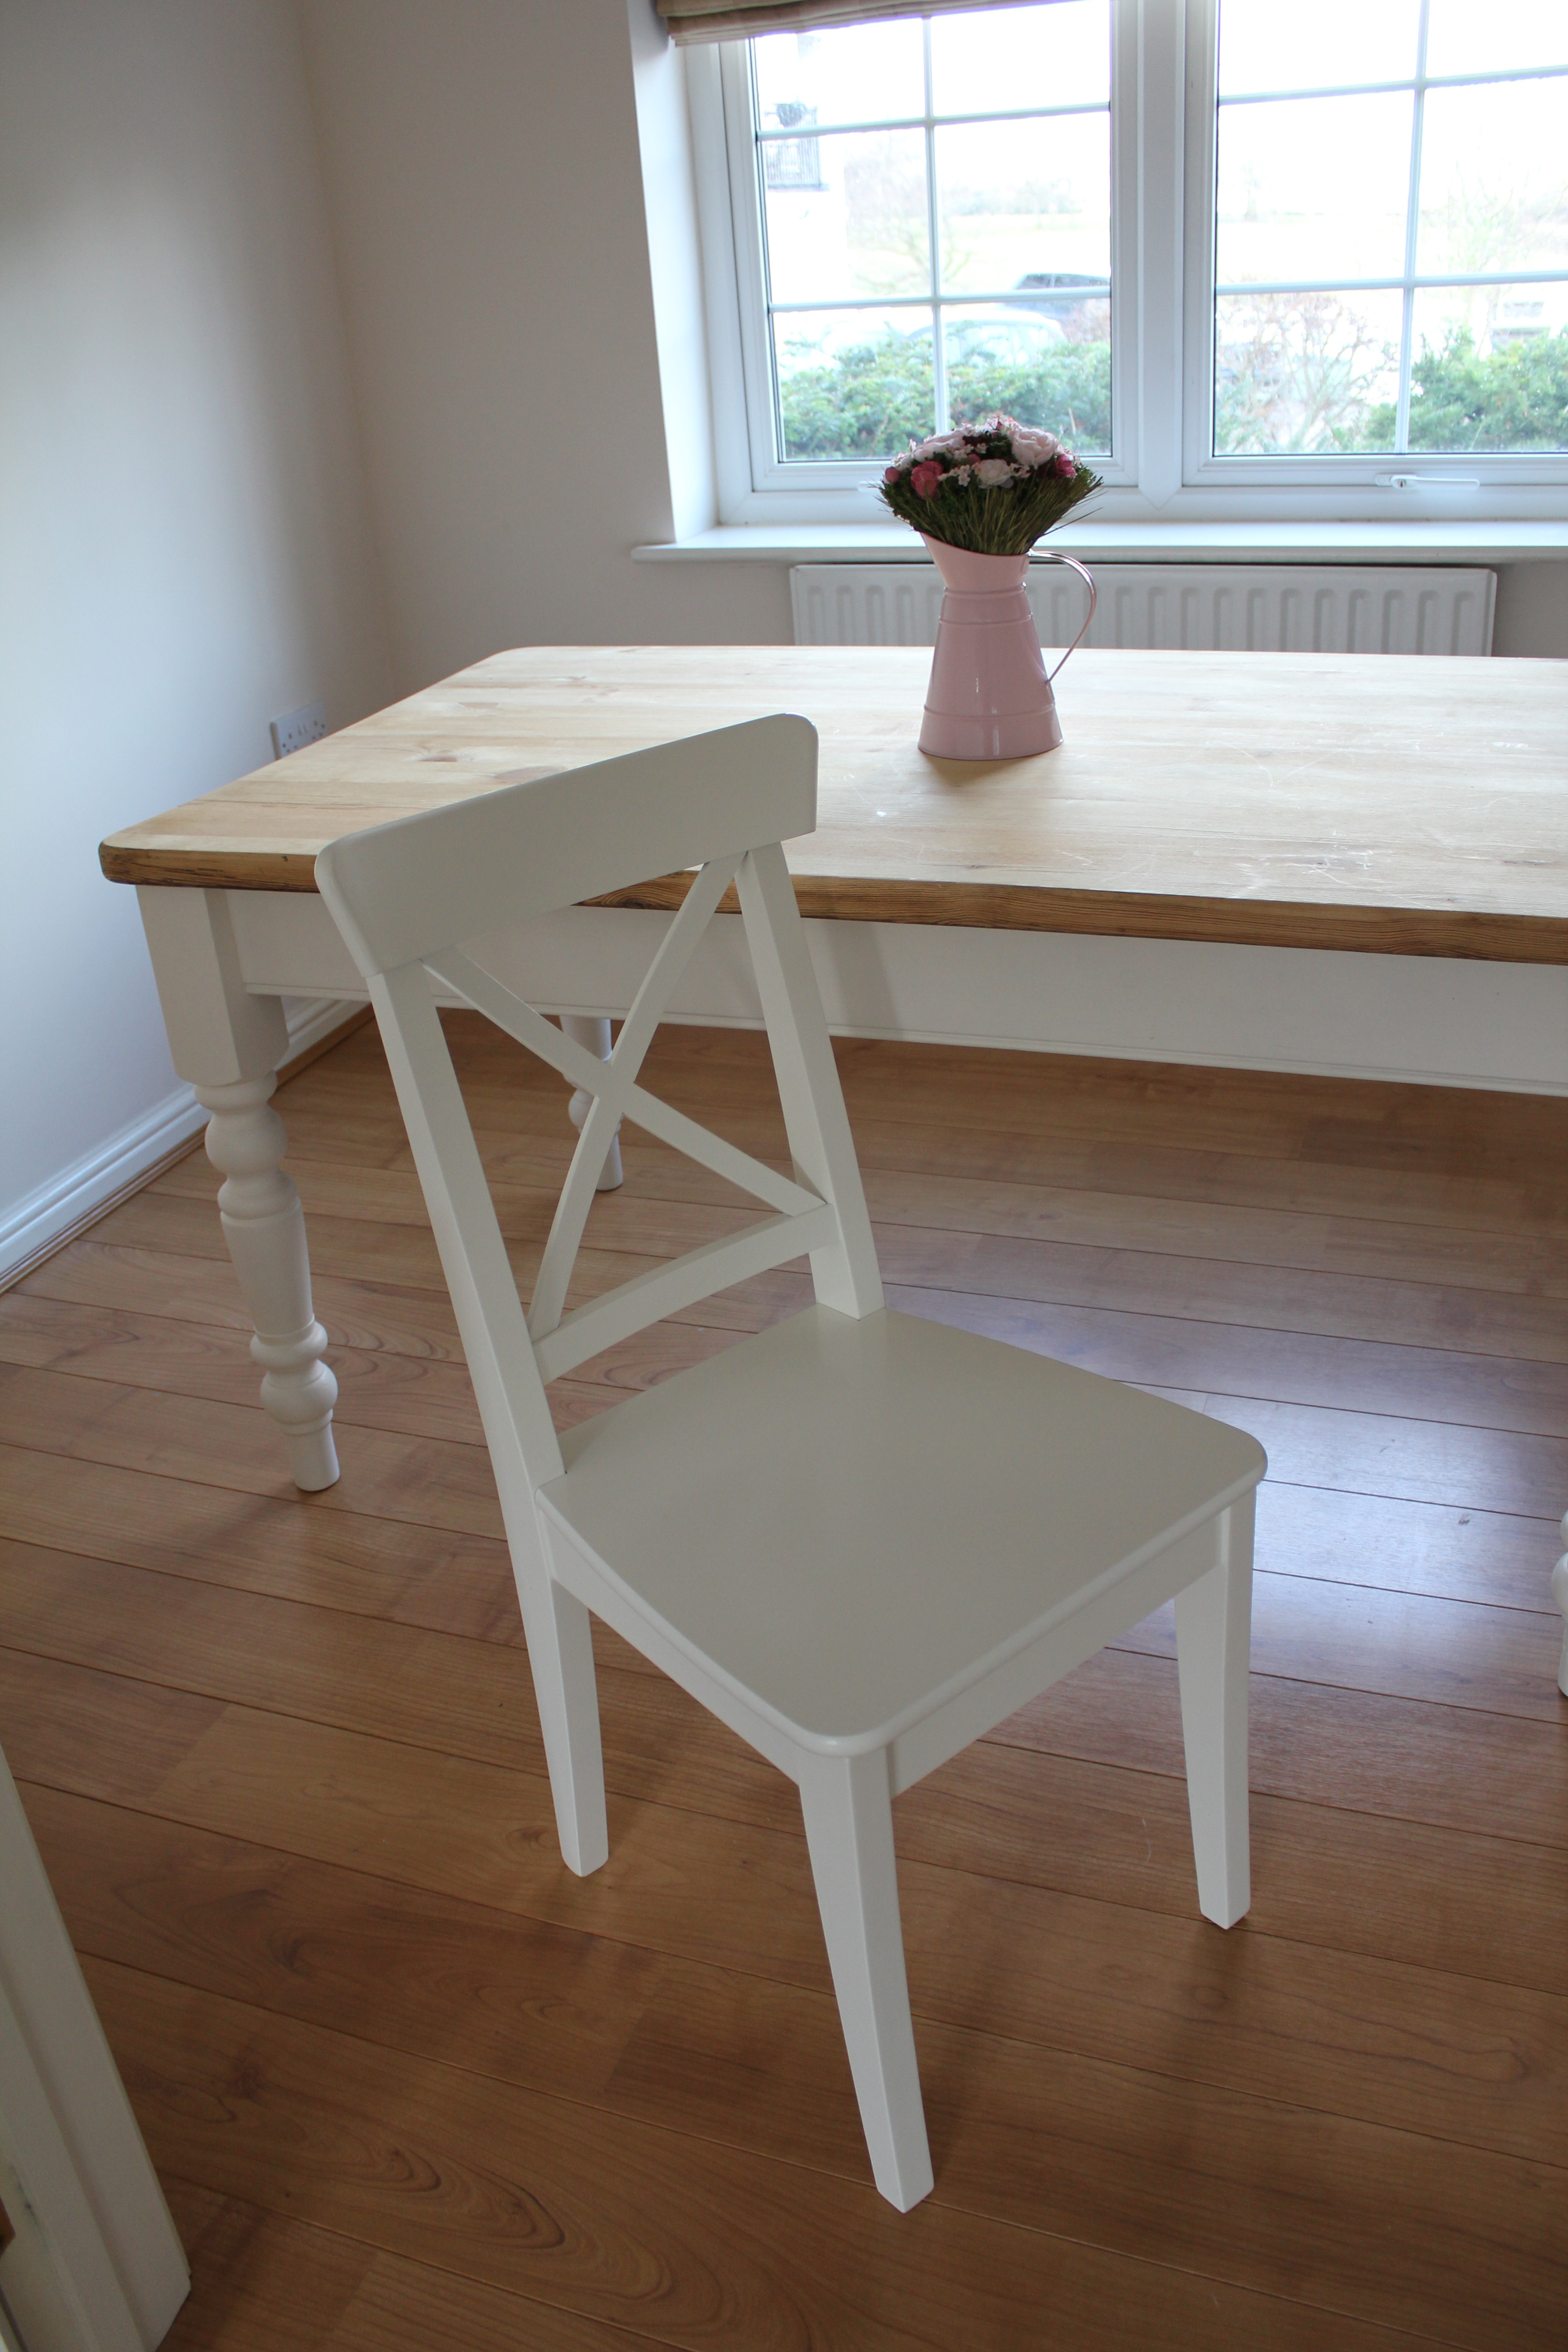 ikea ingolf chair office modern design project dining table with before and after maison belle